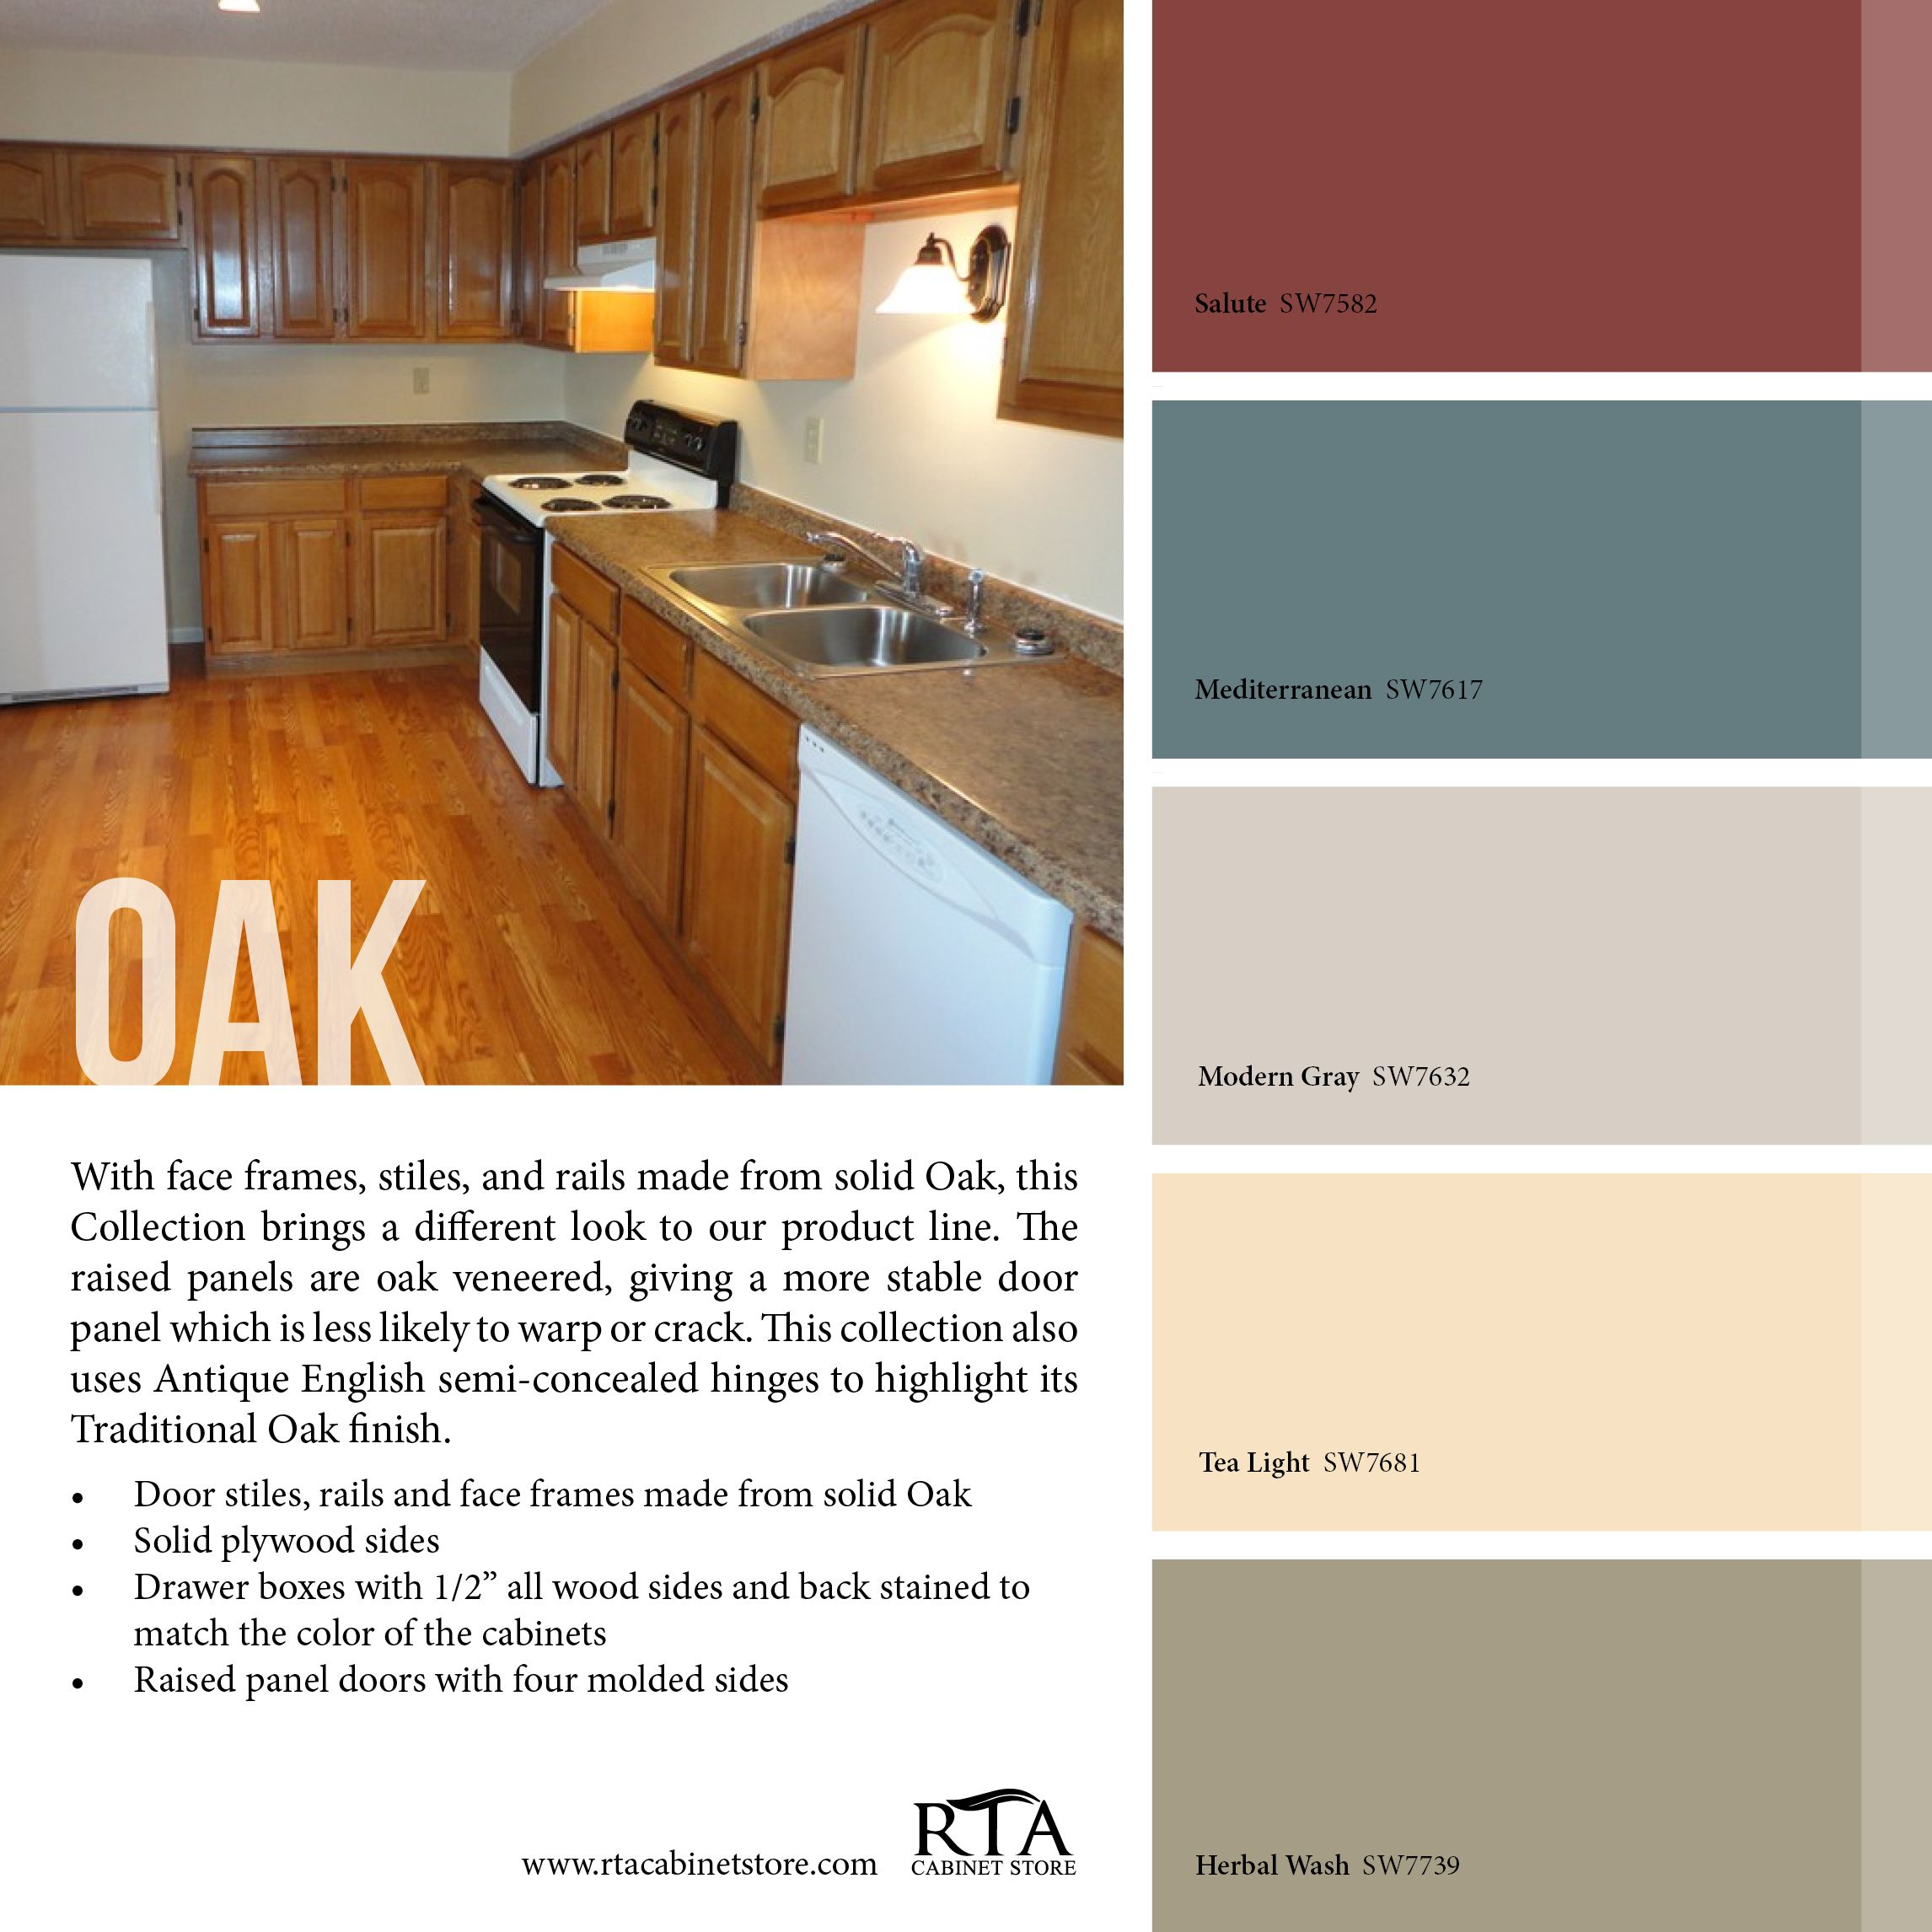 Color palette to go with oak kitchen cabinet line for those with oak